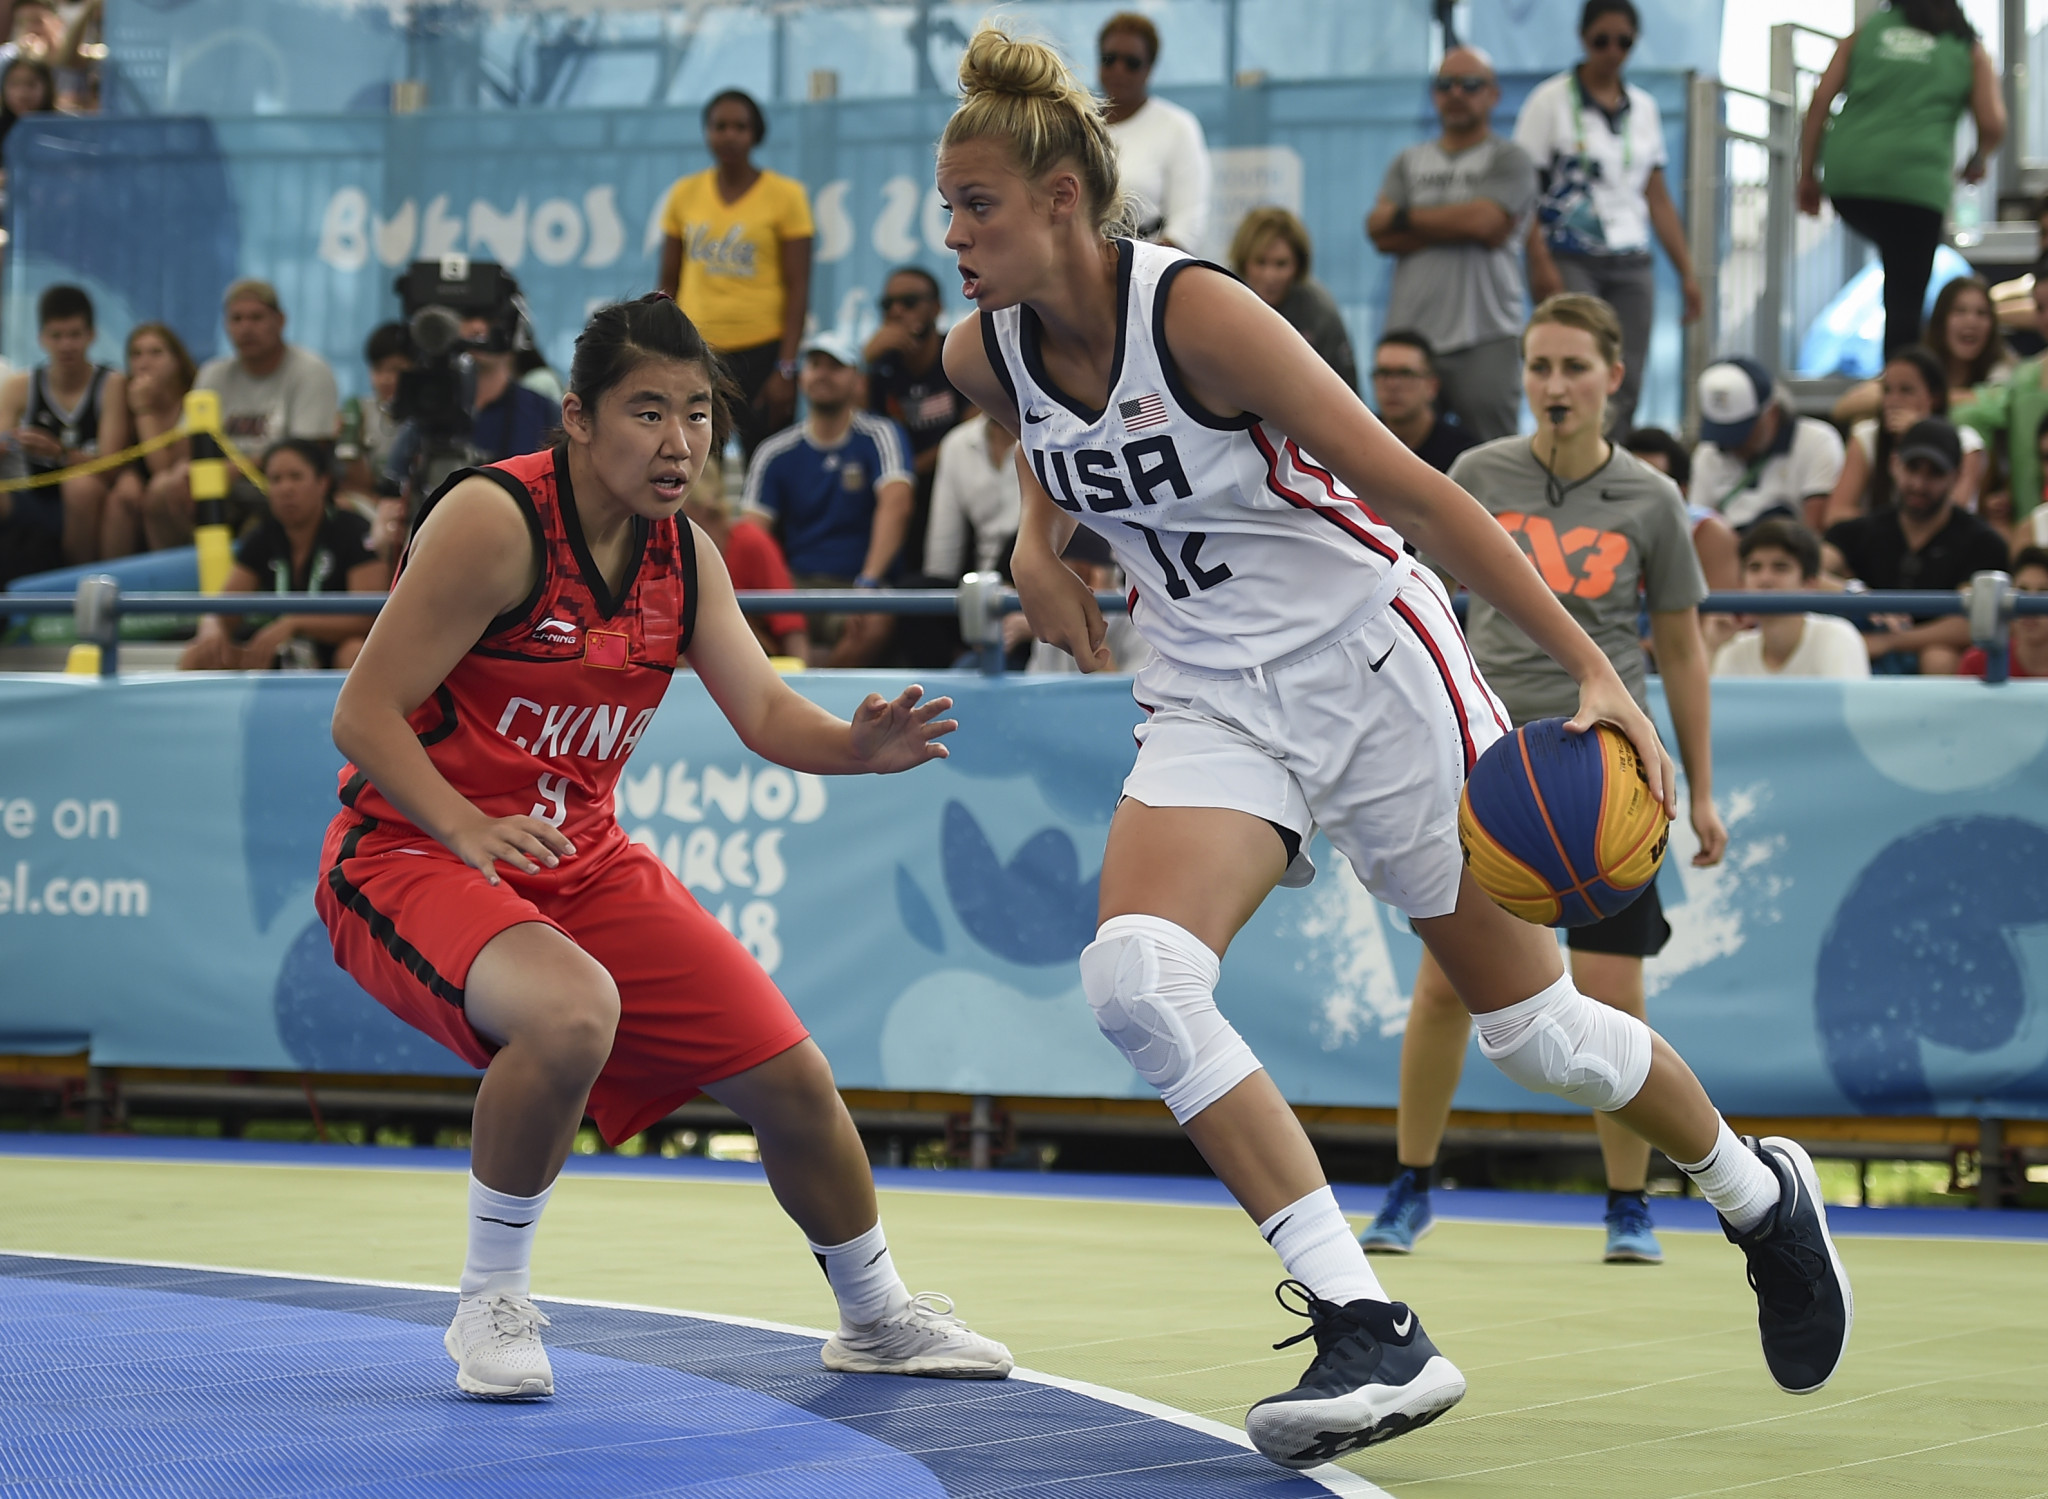 3x3 basketball will make its debut on the Summer Olympic Games programme at Tokyo 2020 ©Getty Images